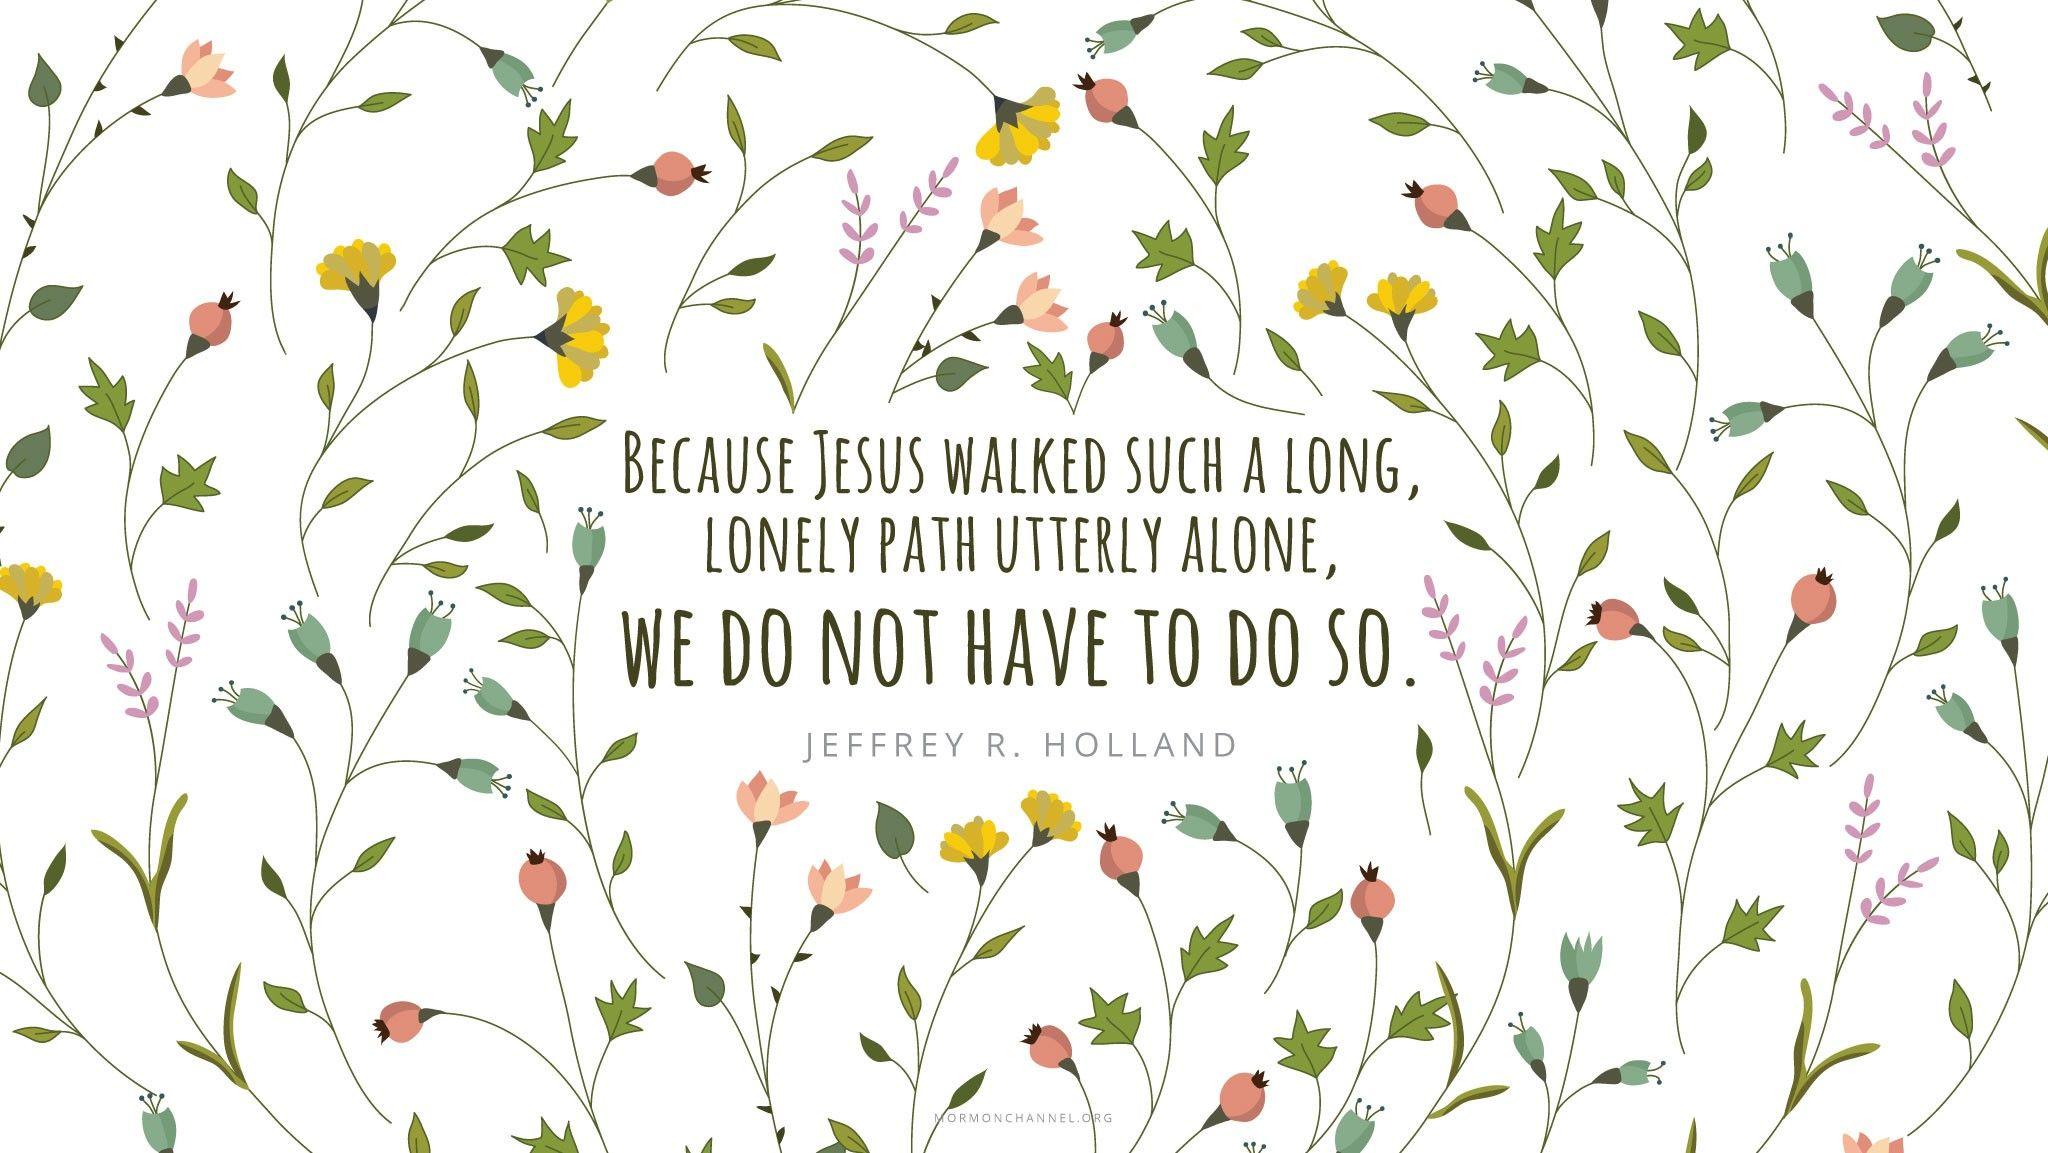 """""""Because Jesus walked such a long, lonely path utterly alone, we do not have to do so.""""—Elder Jeffrey R. Holland, """"None Were with Him"""" © undefined ipCode 1."""